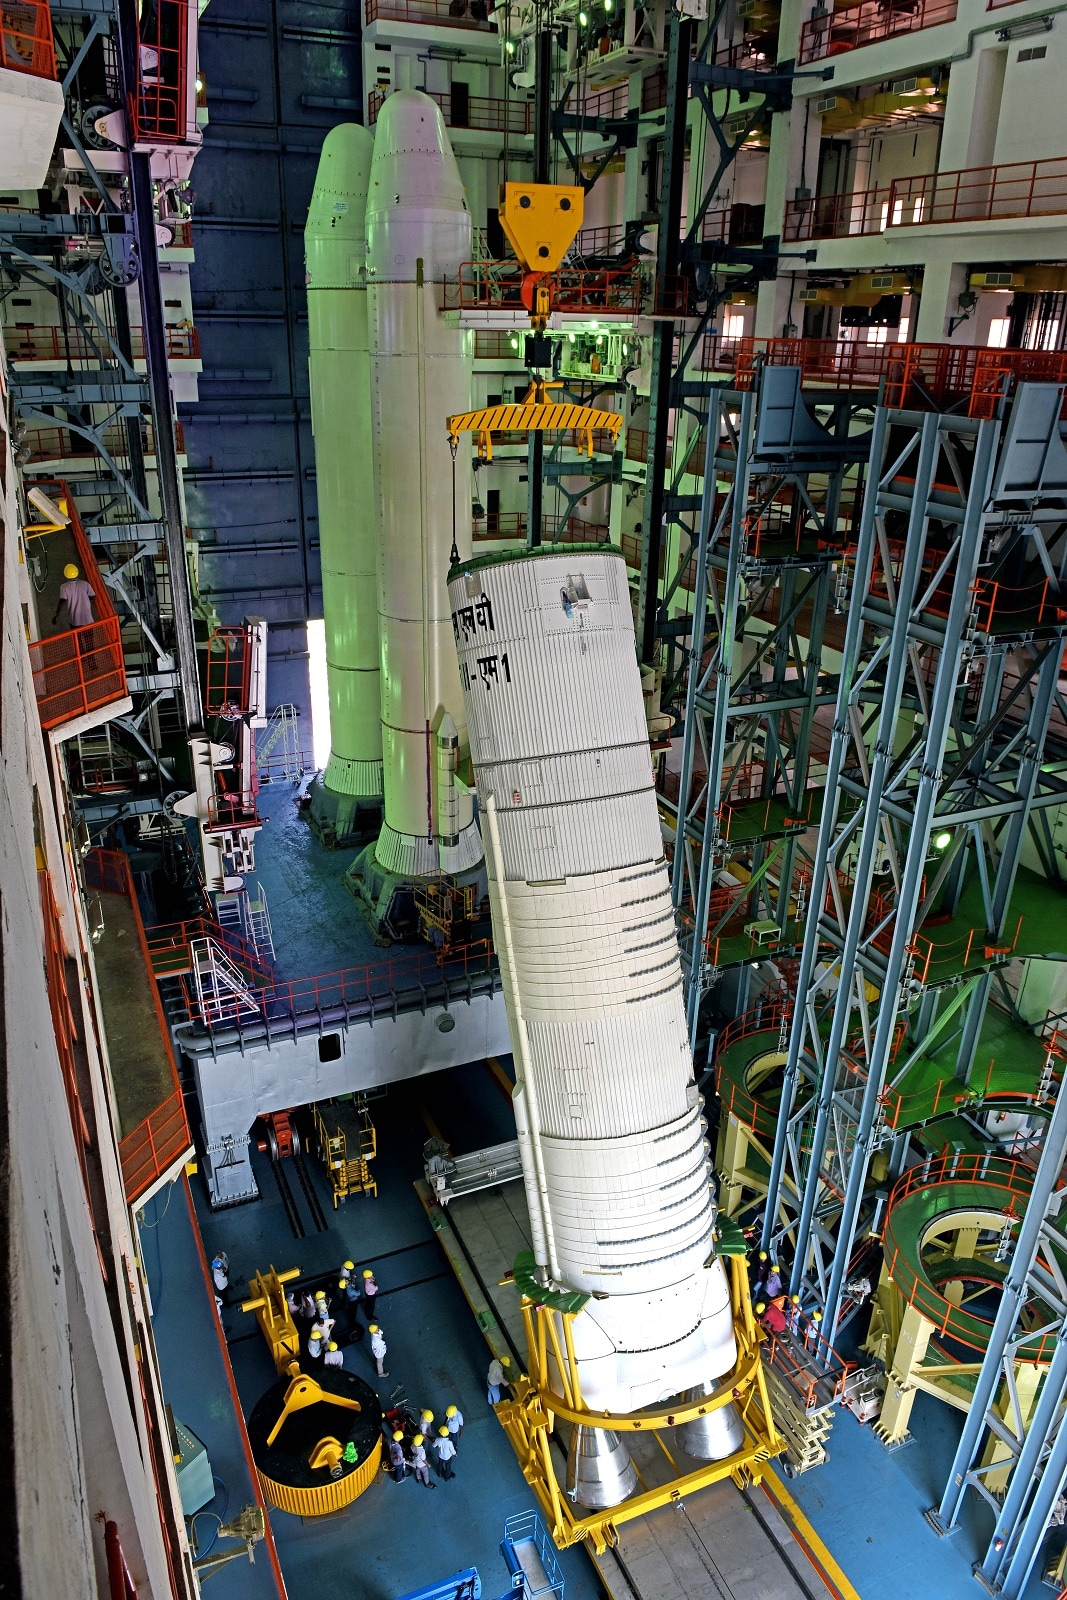 Hoisting of the L-110 stage for integration with the S-200. (Image: ISRO)